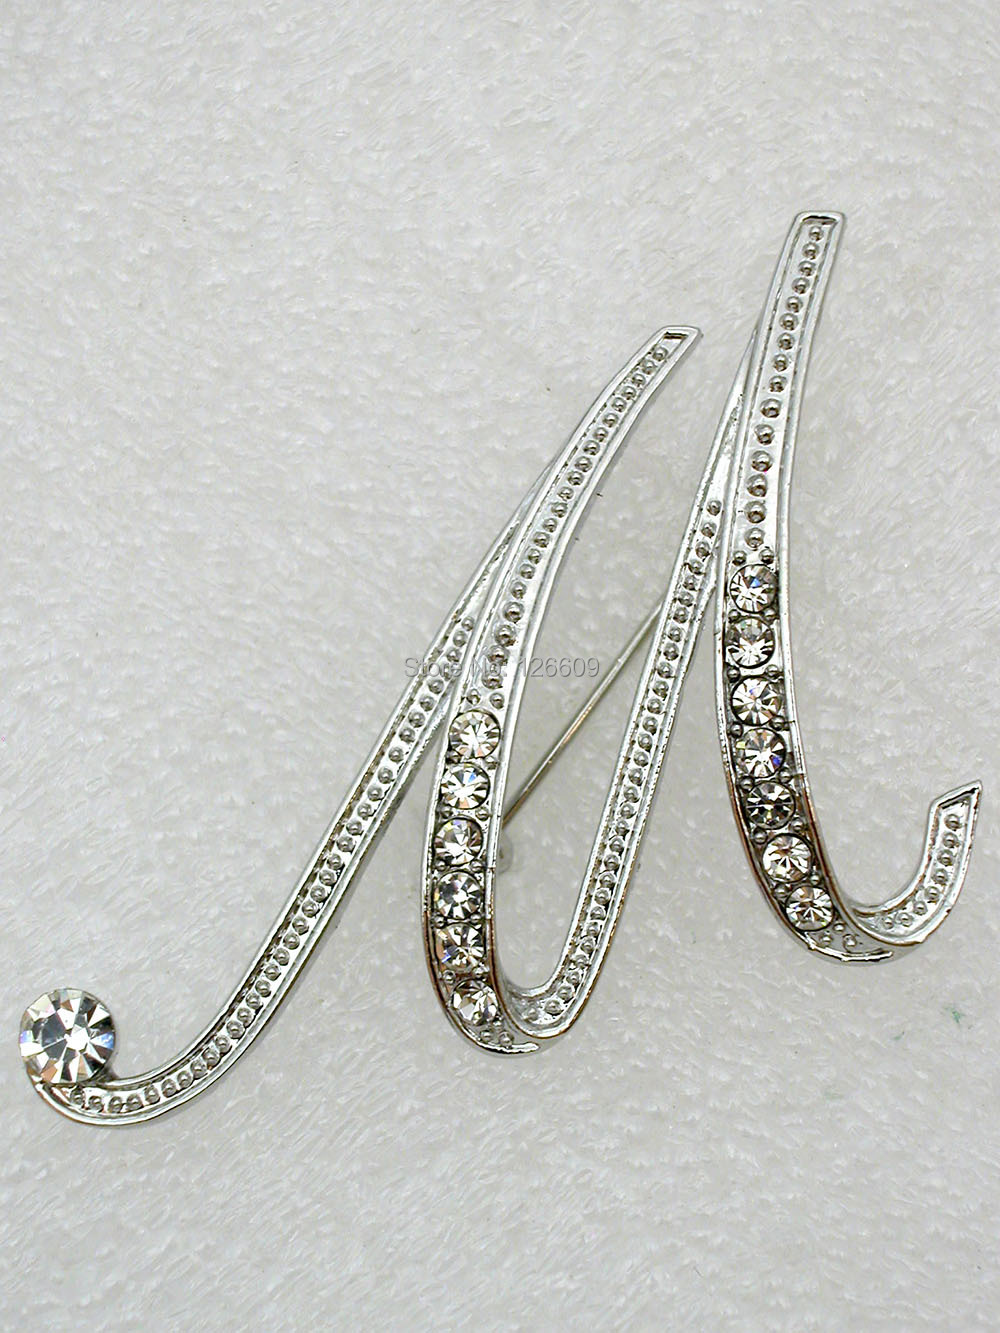 Clear Rhinestone Fashion Clothing letters M Crystal brooches pins gift jewelry C2070-M - Wei's Mall store